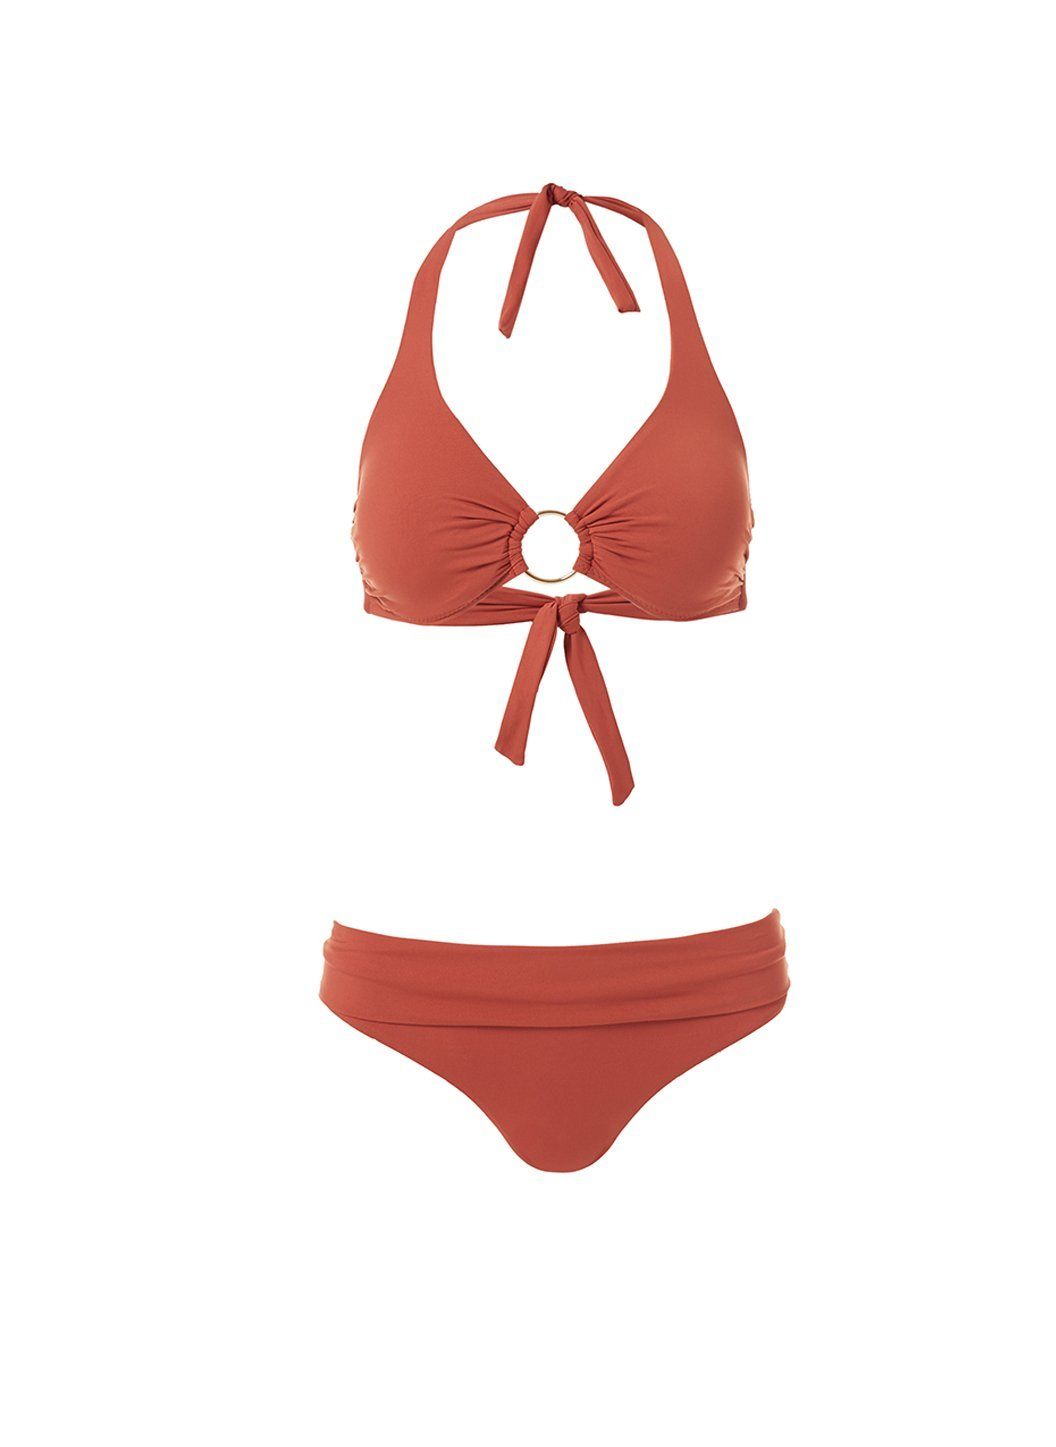 brussels cinnamon halterneck ring supportive bikini 2019